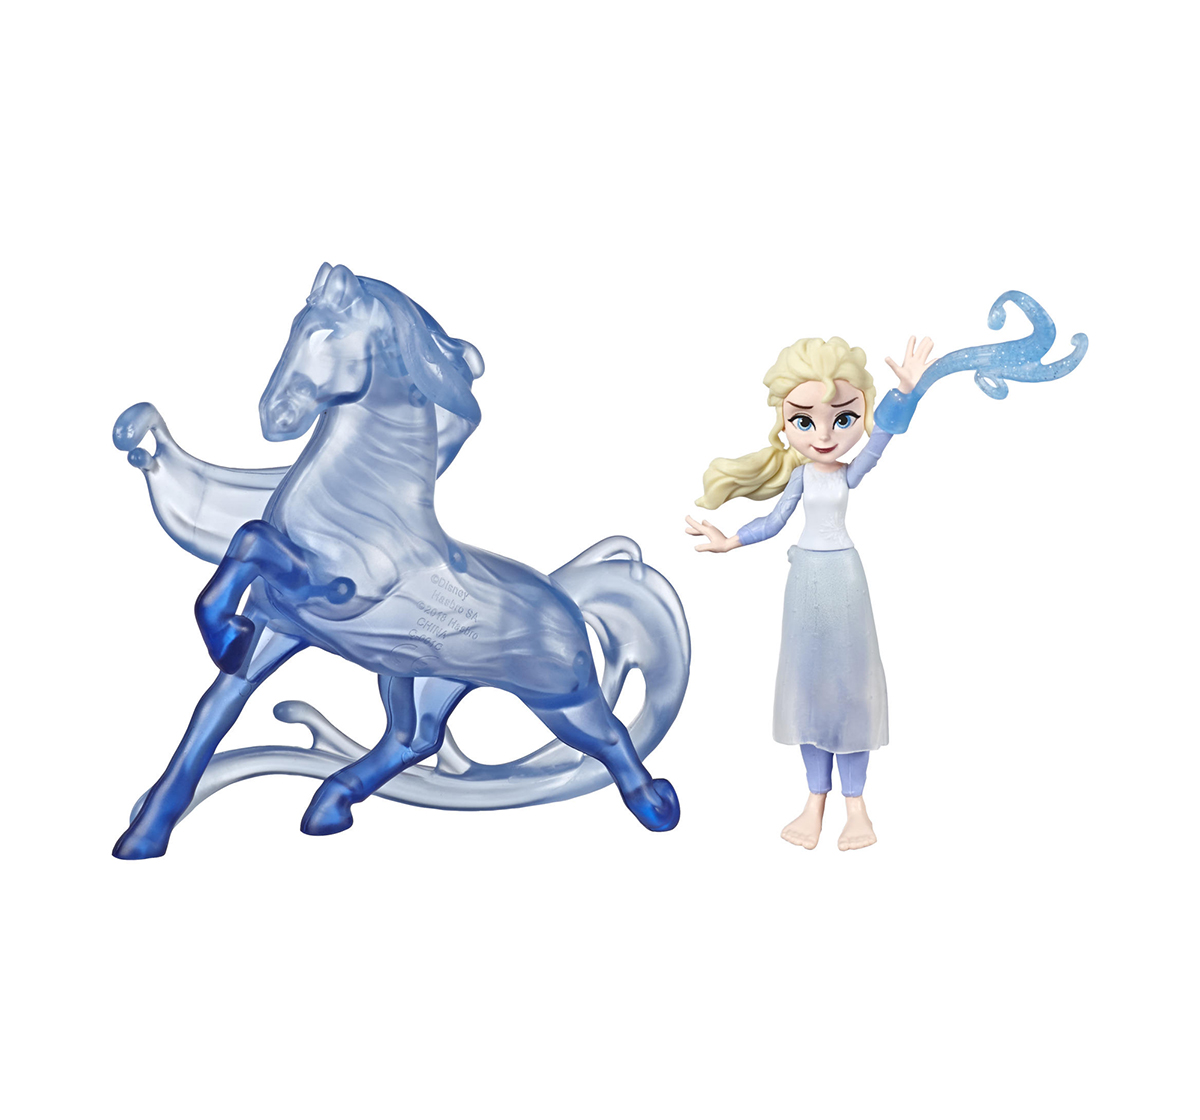 My Little Pony | Disney Elsa Doll And Nokk Figure Assorted Dolls & Accessories for Girls age 3Y+